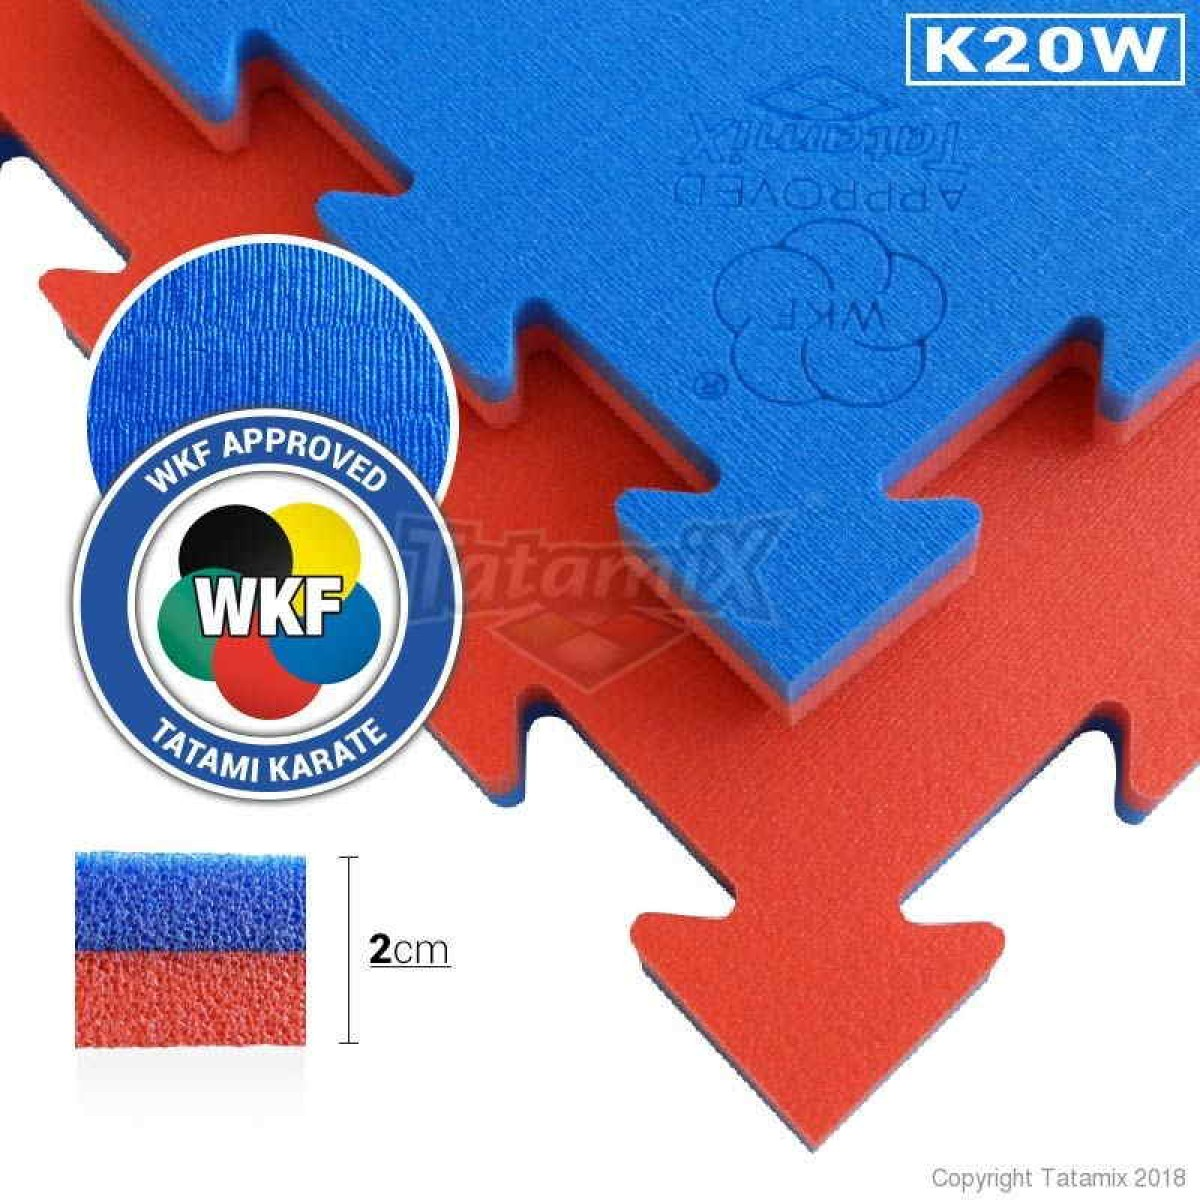 Karate Matte WKF approved rot/blau Tatamix